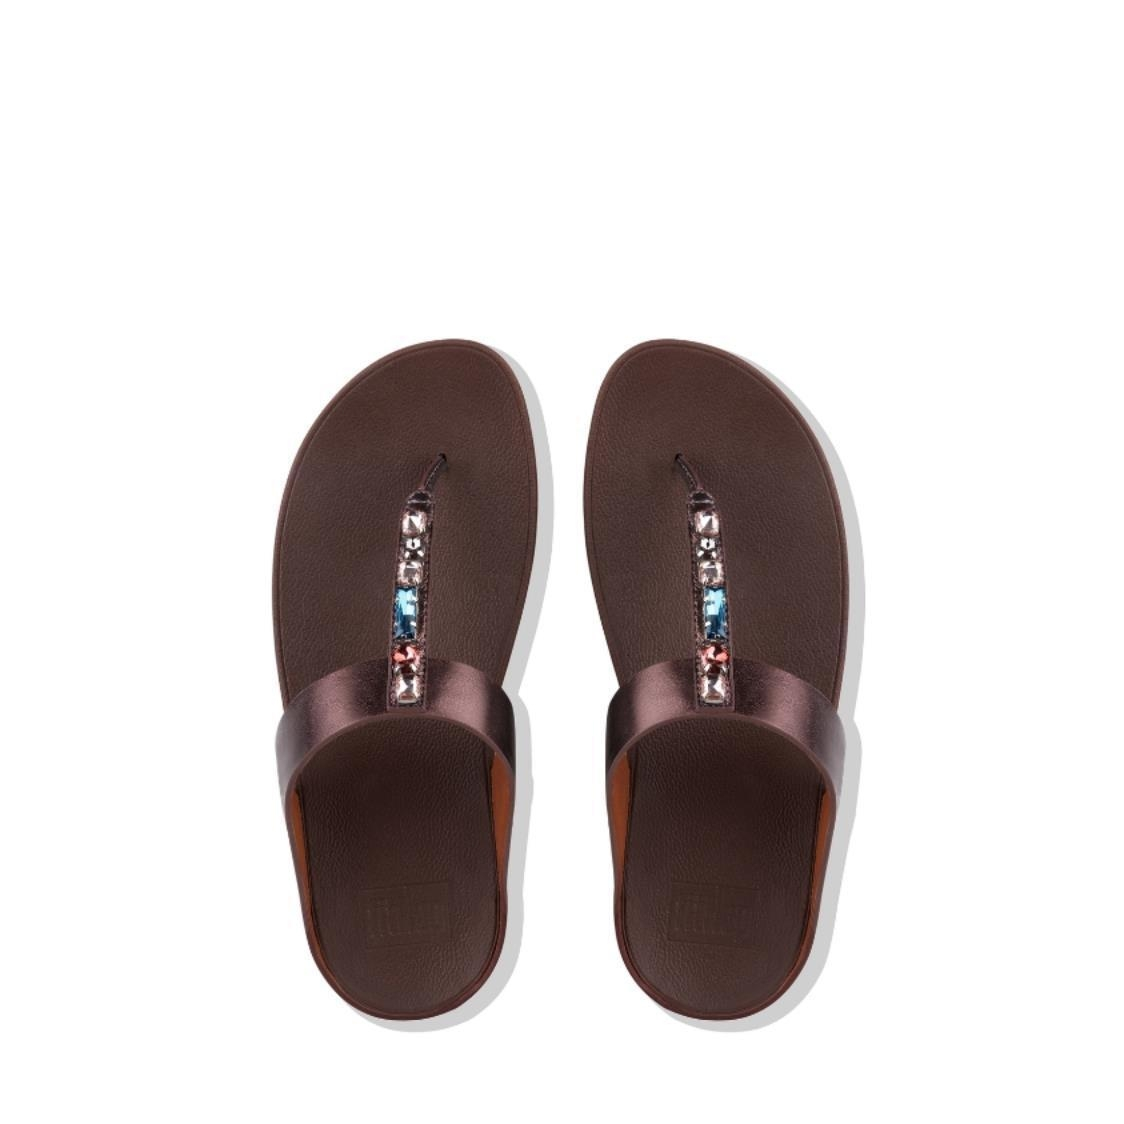 Fino Bejewelled Leather Toe-Thongs Berry